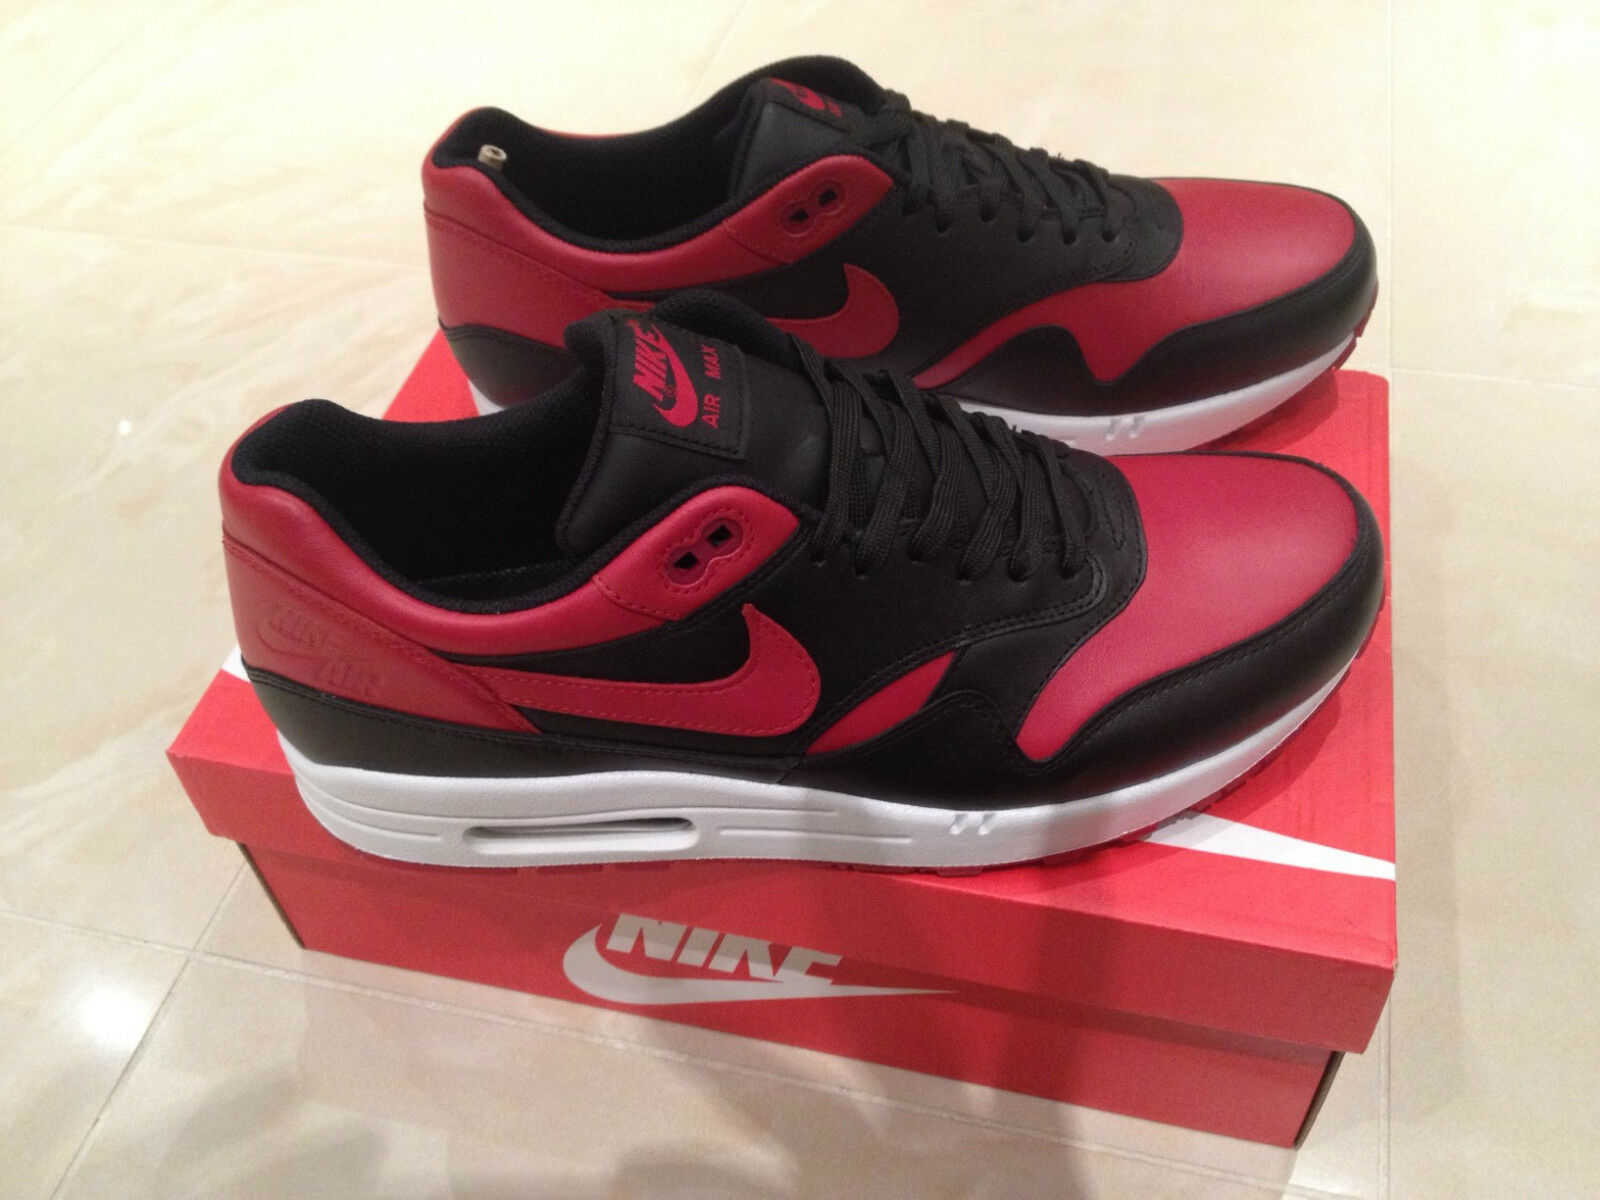 2015 2015 2015 NIKE AIR MAX 1 BRED PRM QS VALENTINES RED BLACK SIZES 6 7 & 8 NEW *LOOK* acb716